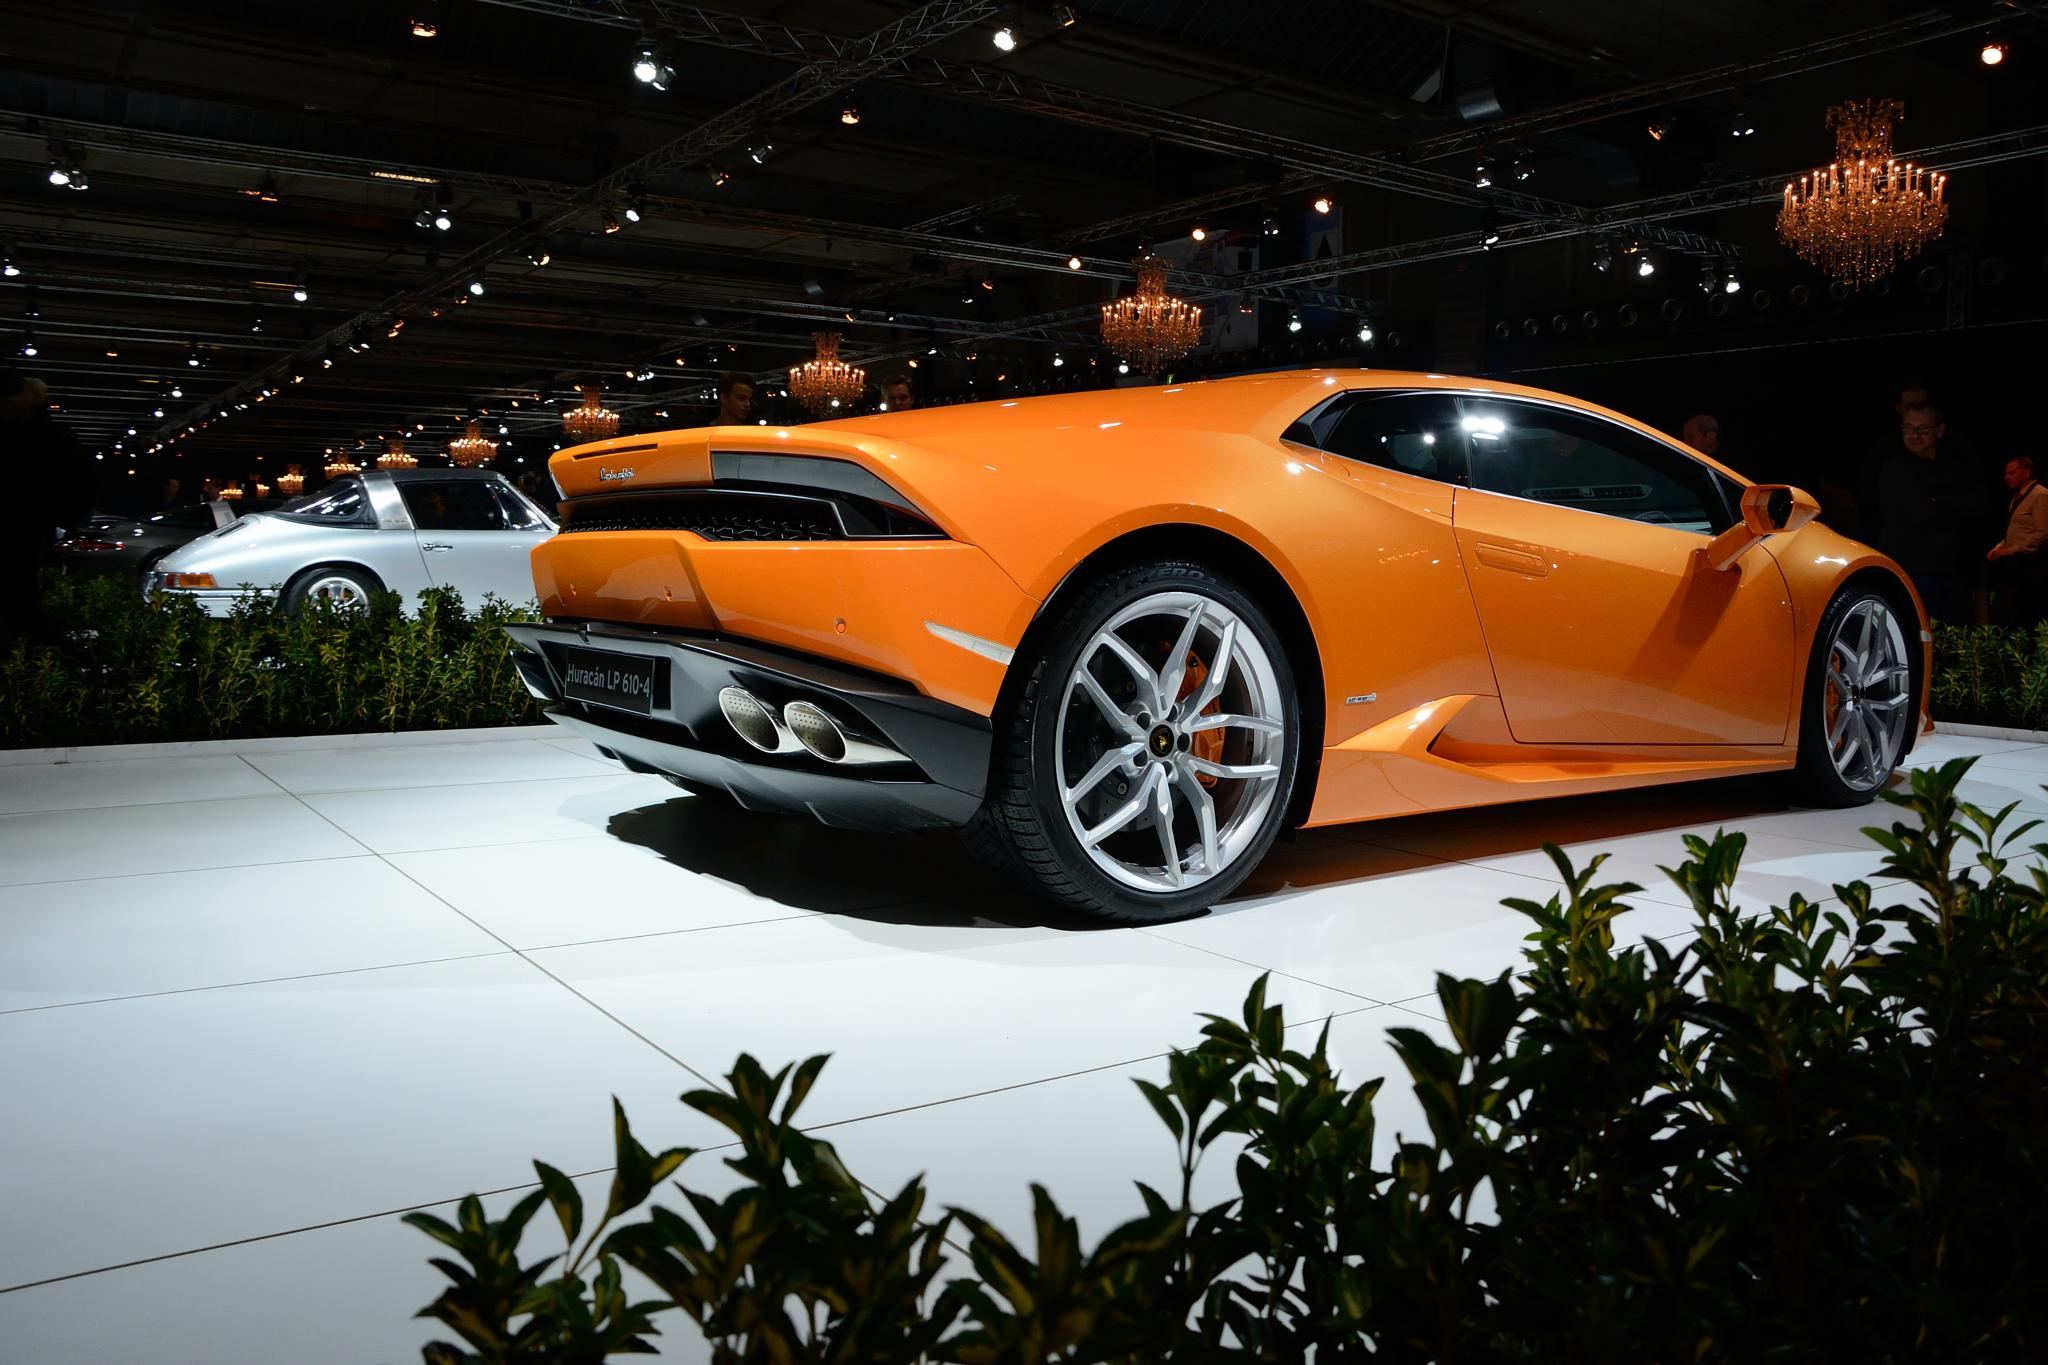 Lamborghini at dreamcars expo, Brussel, Belgium by Wim Byl